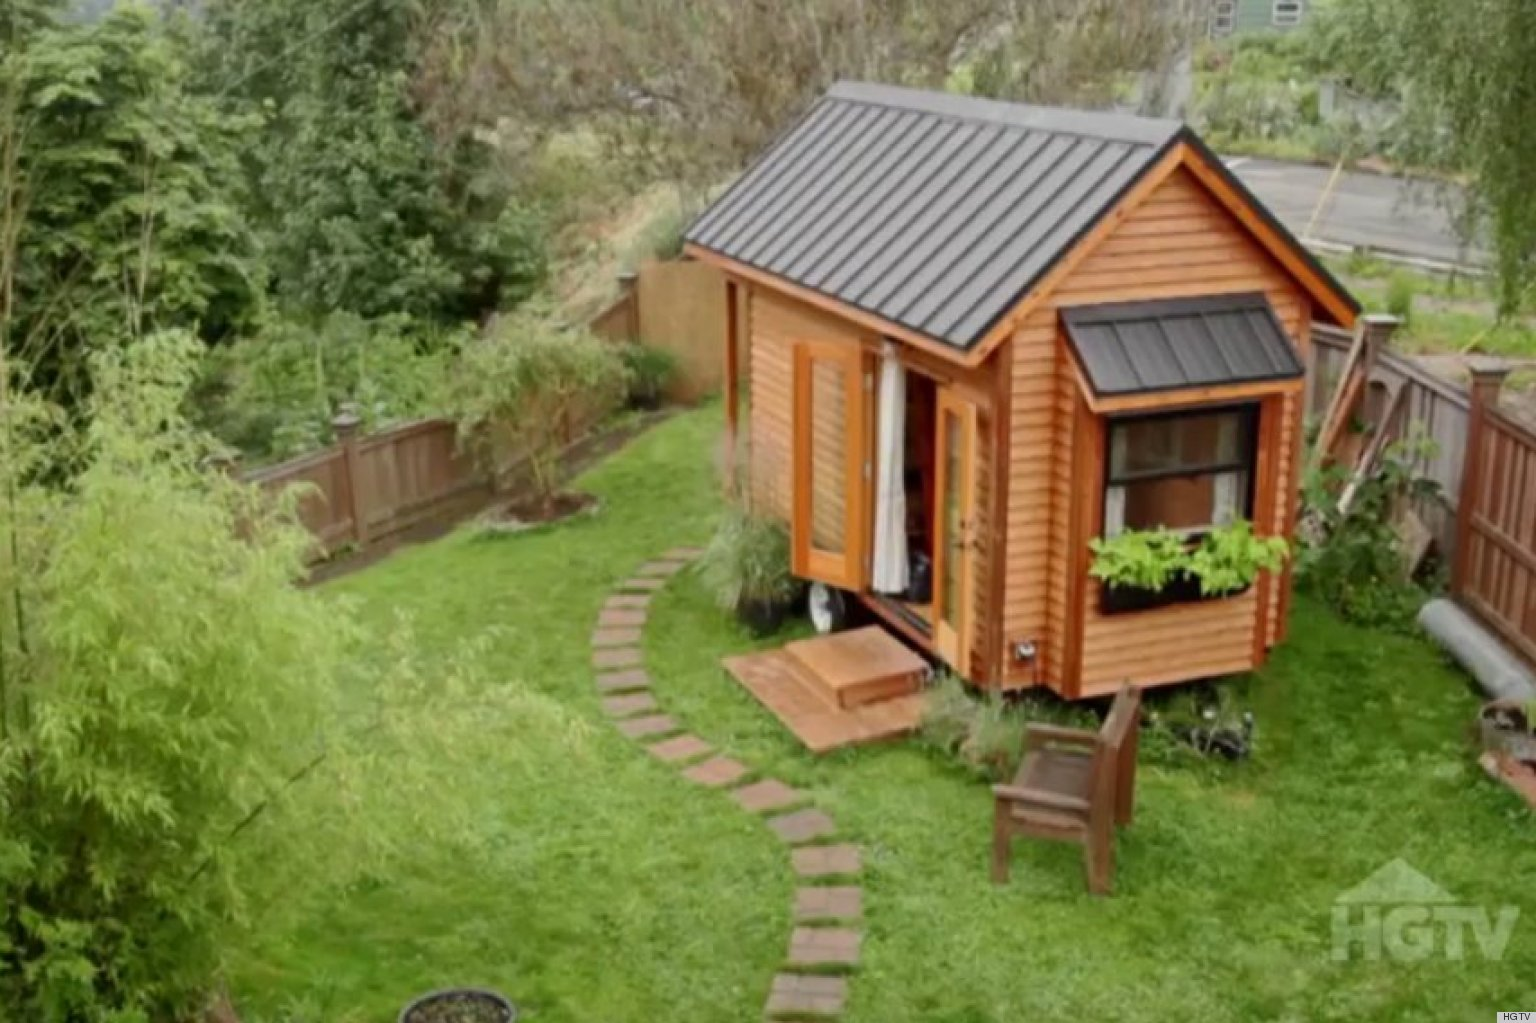 Tammy Strobels 128 Square Foot Tiny Home Gets Featured On HGTVs Extreme Homes VIDEO